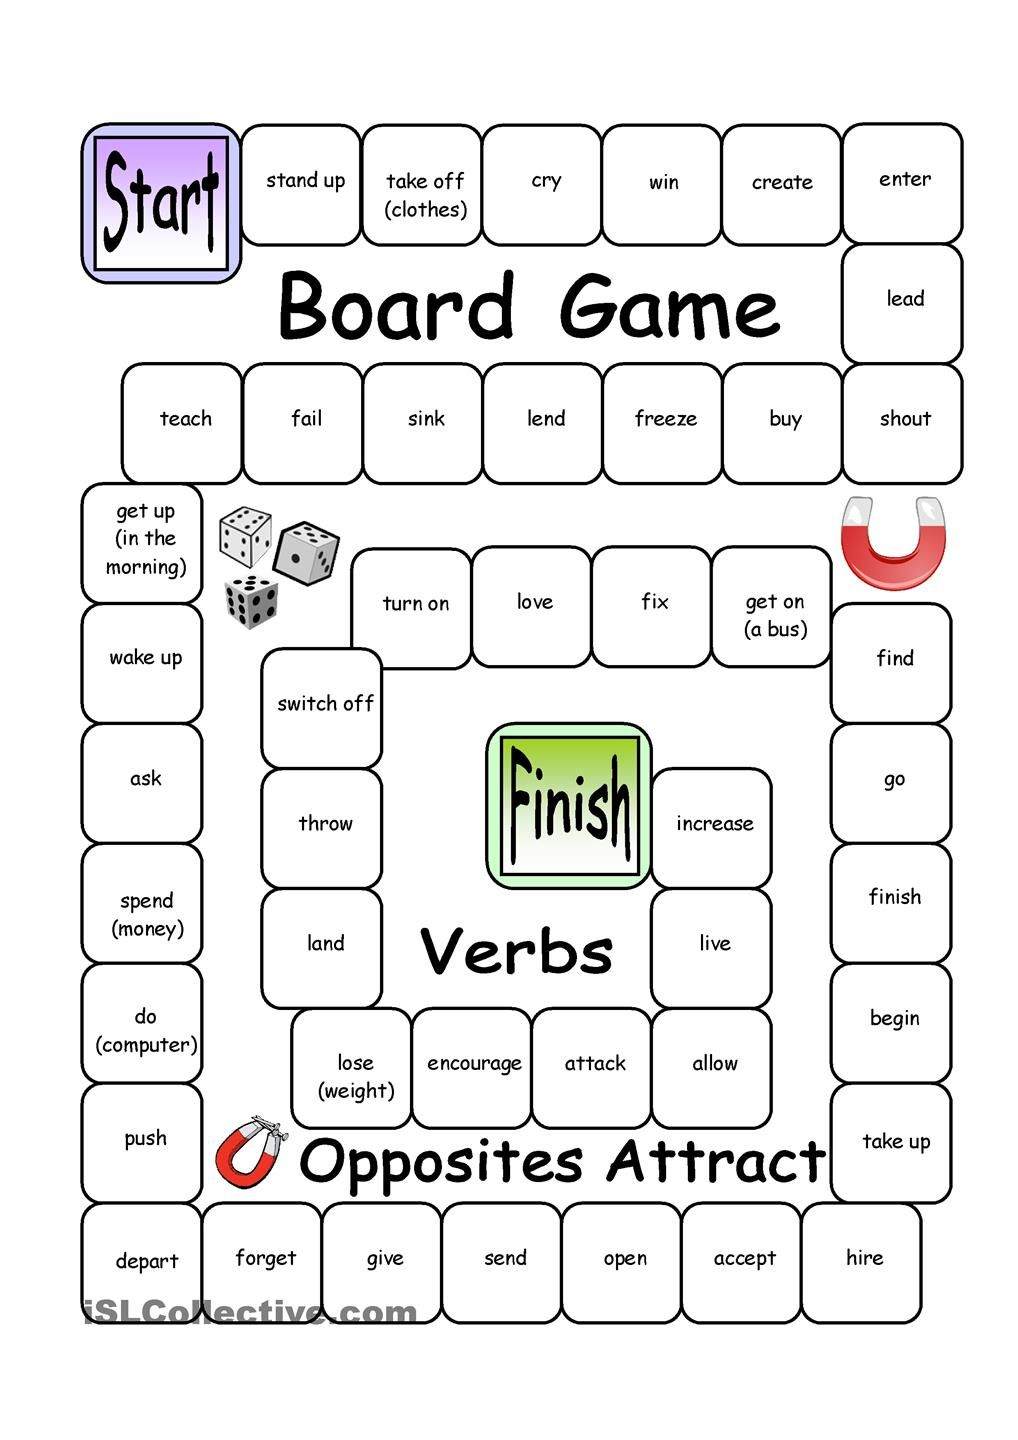 Board Game Opposites Attract Verbs With Images English